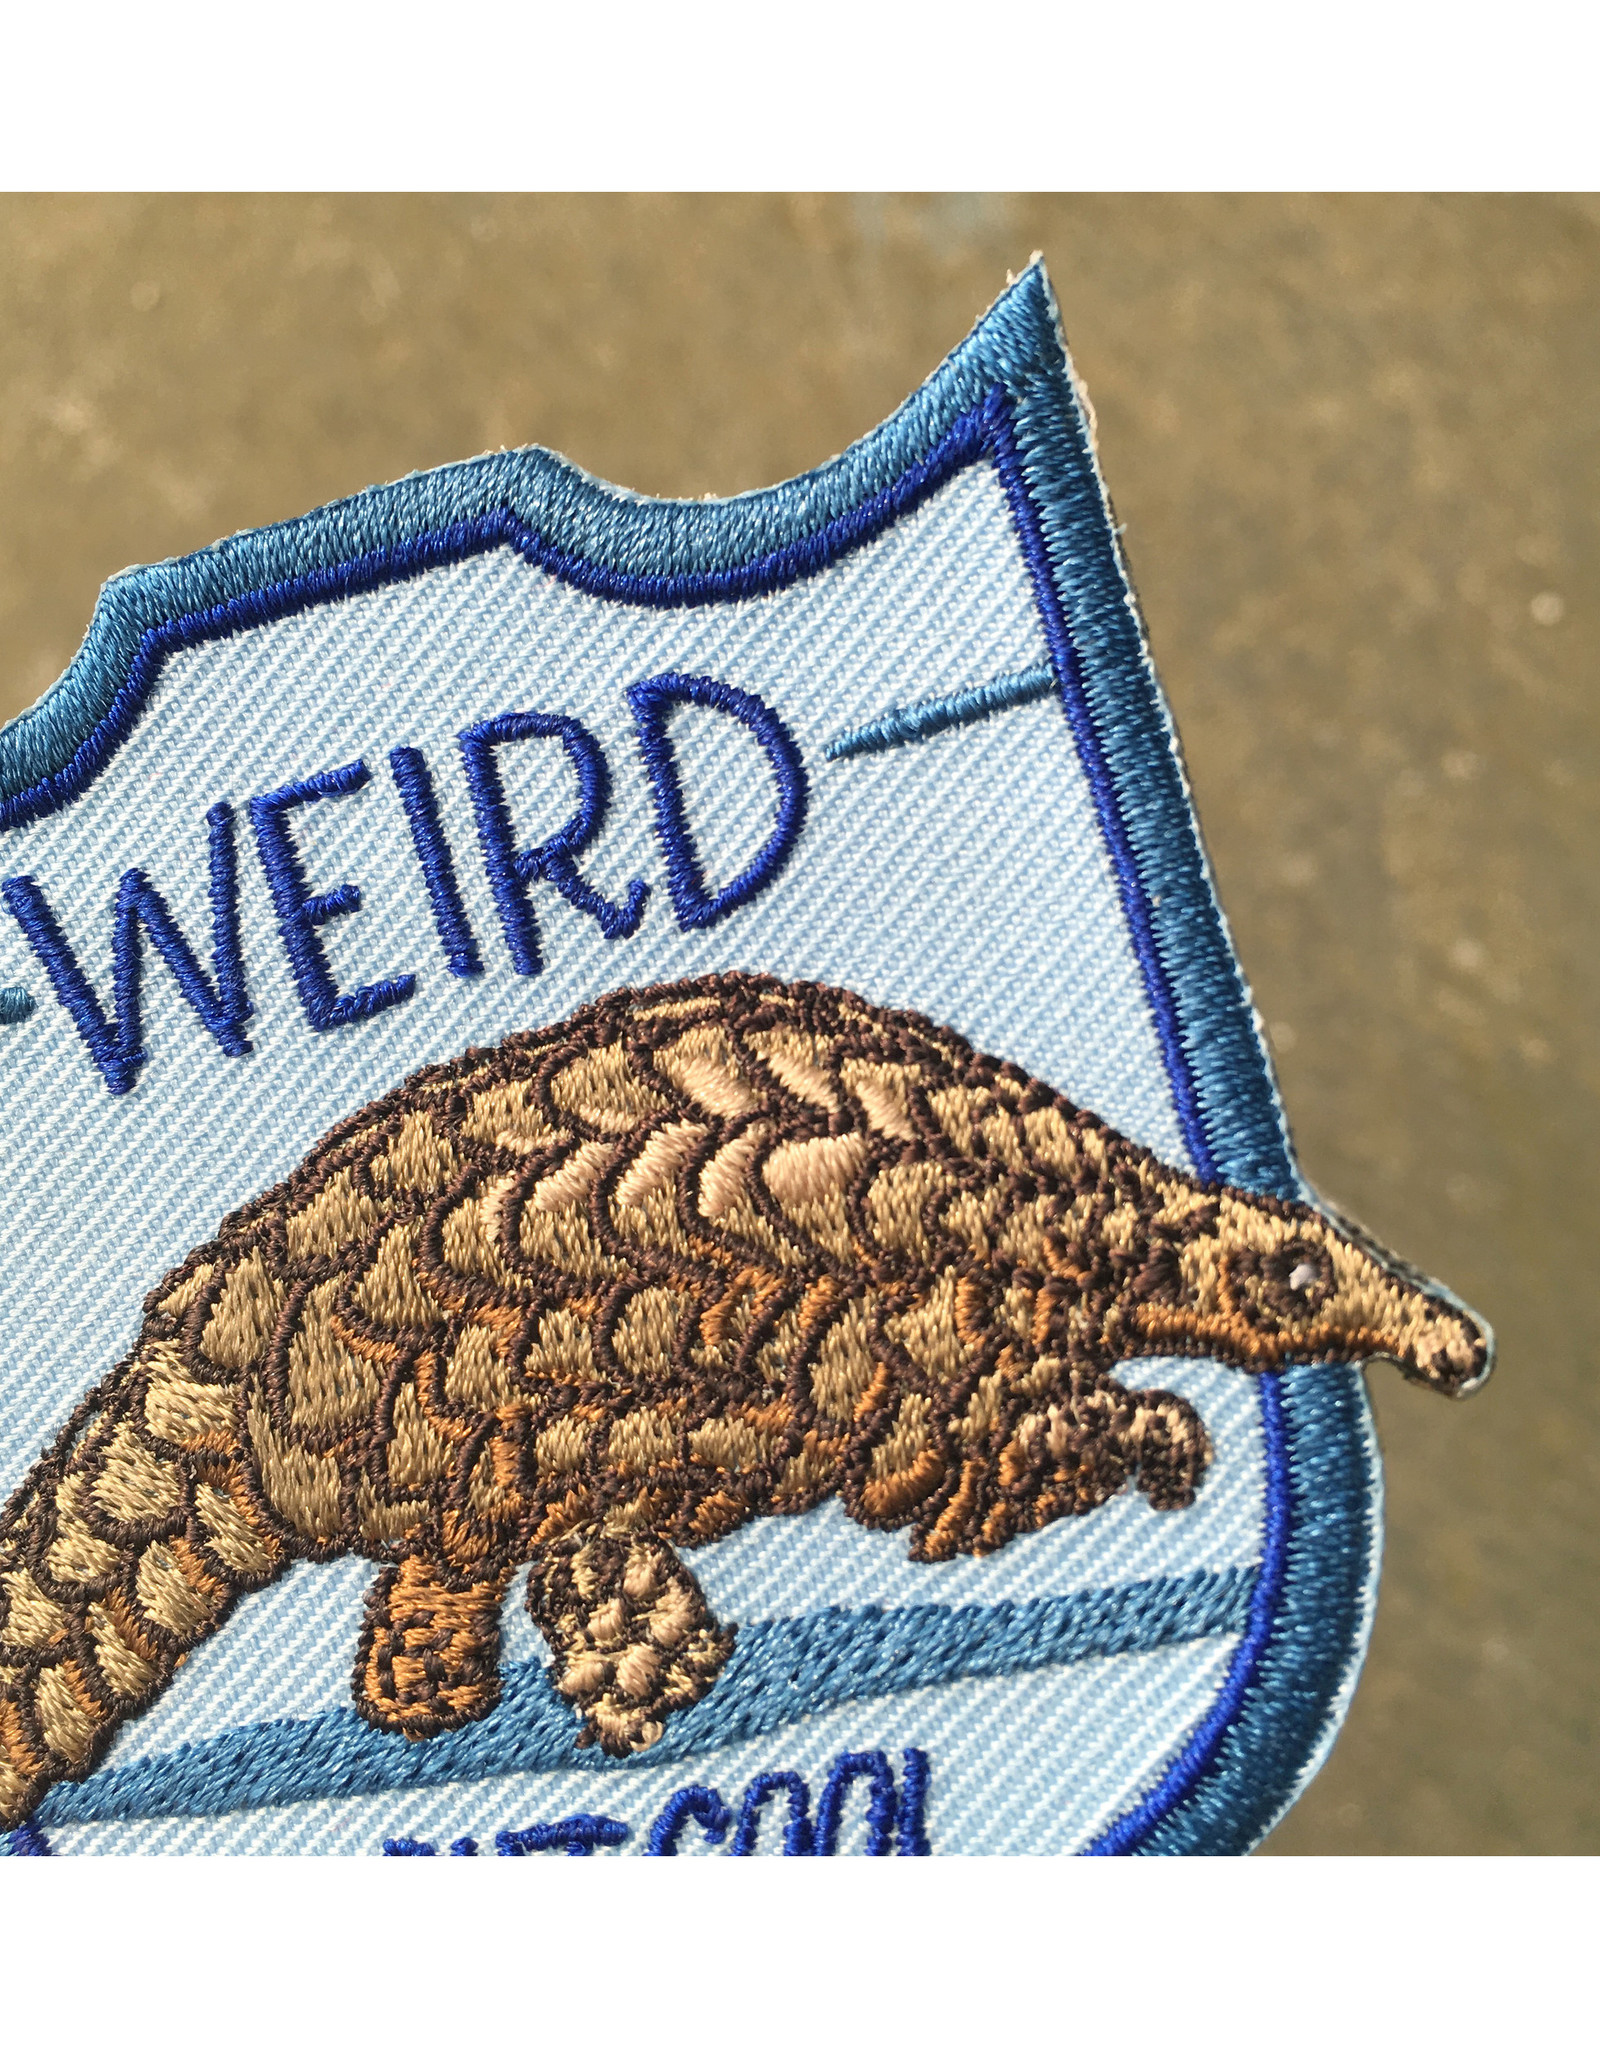 "Pangolin ""Weird But Cool"" Patch"